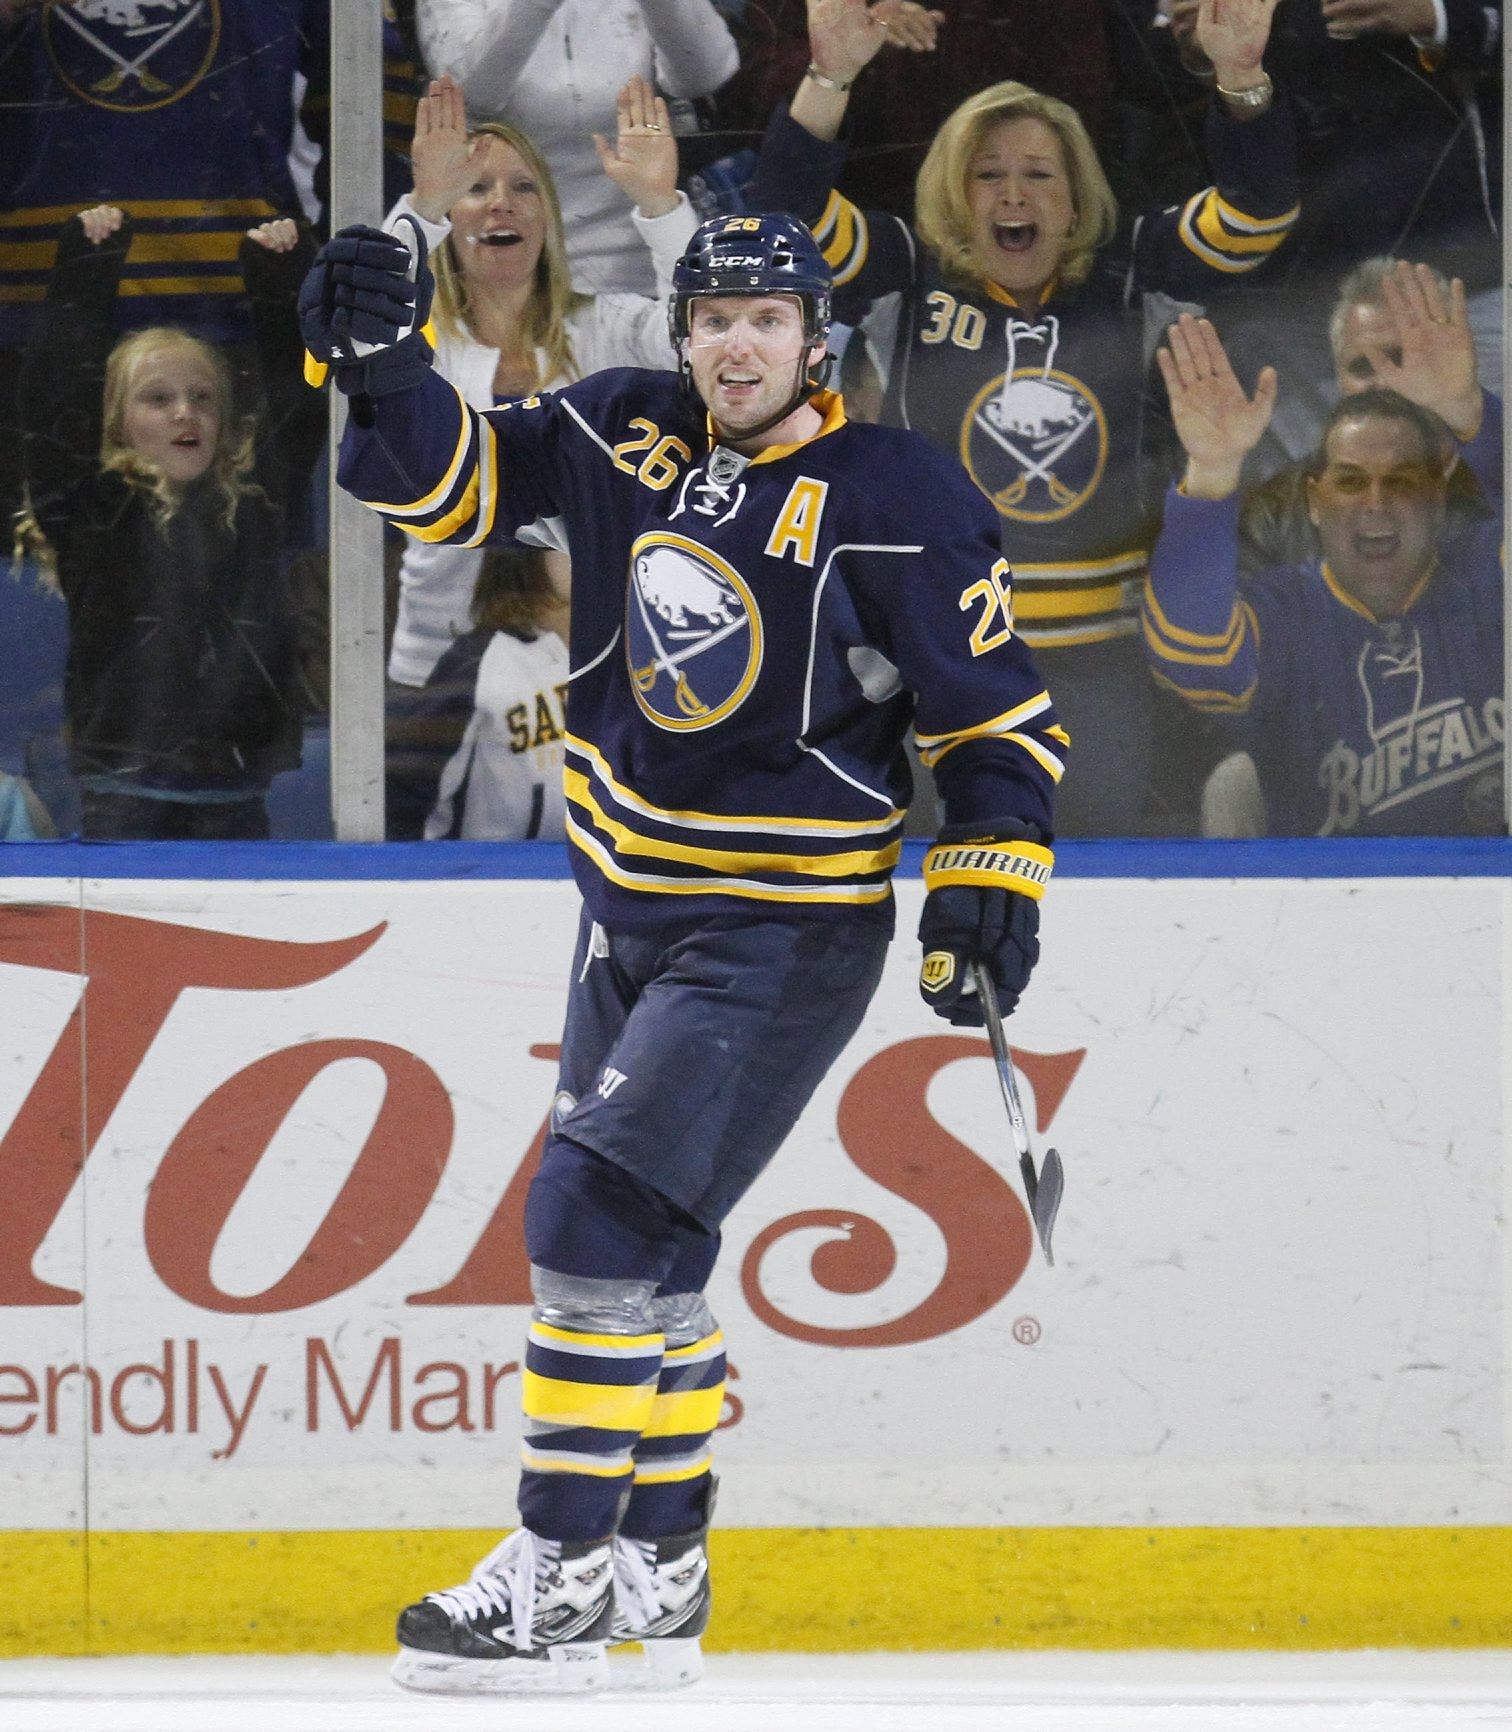 Thomas Vanek will try to get back to hockey while fielding questions about his uncertain future with the Sabres.